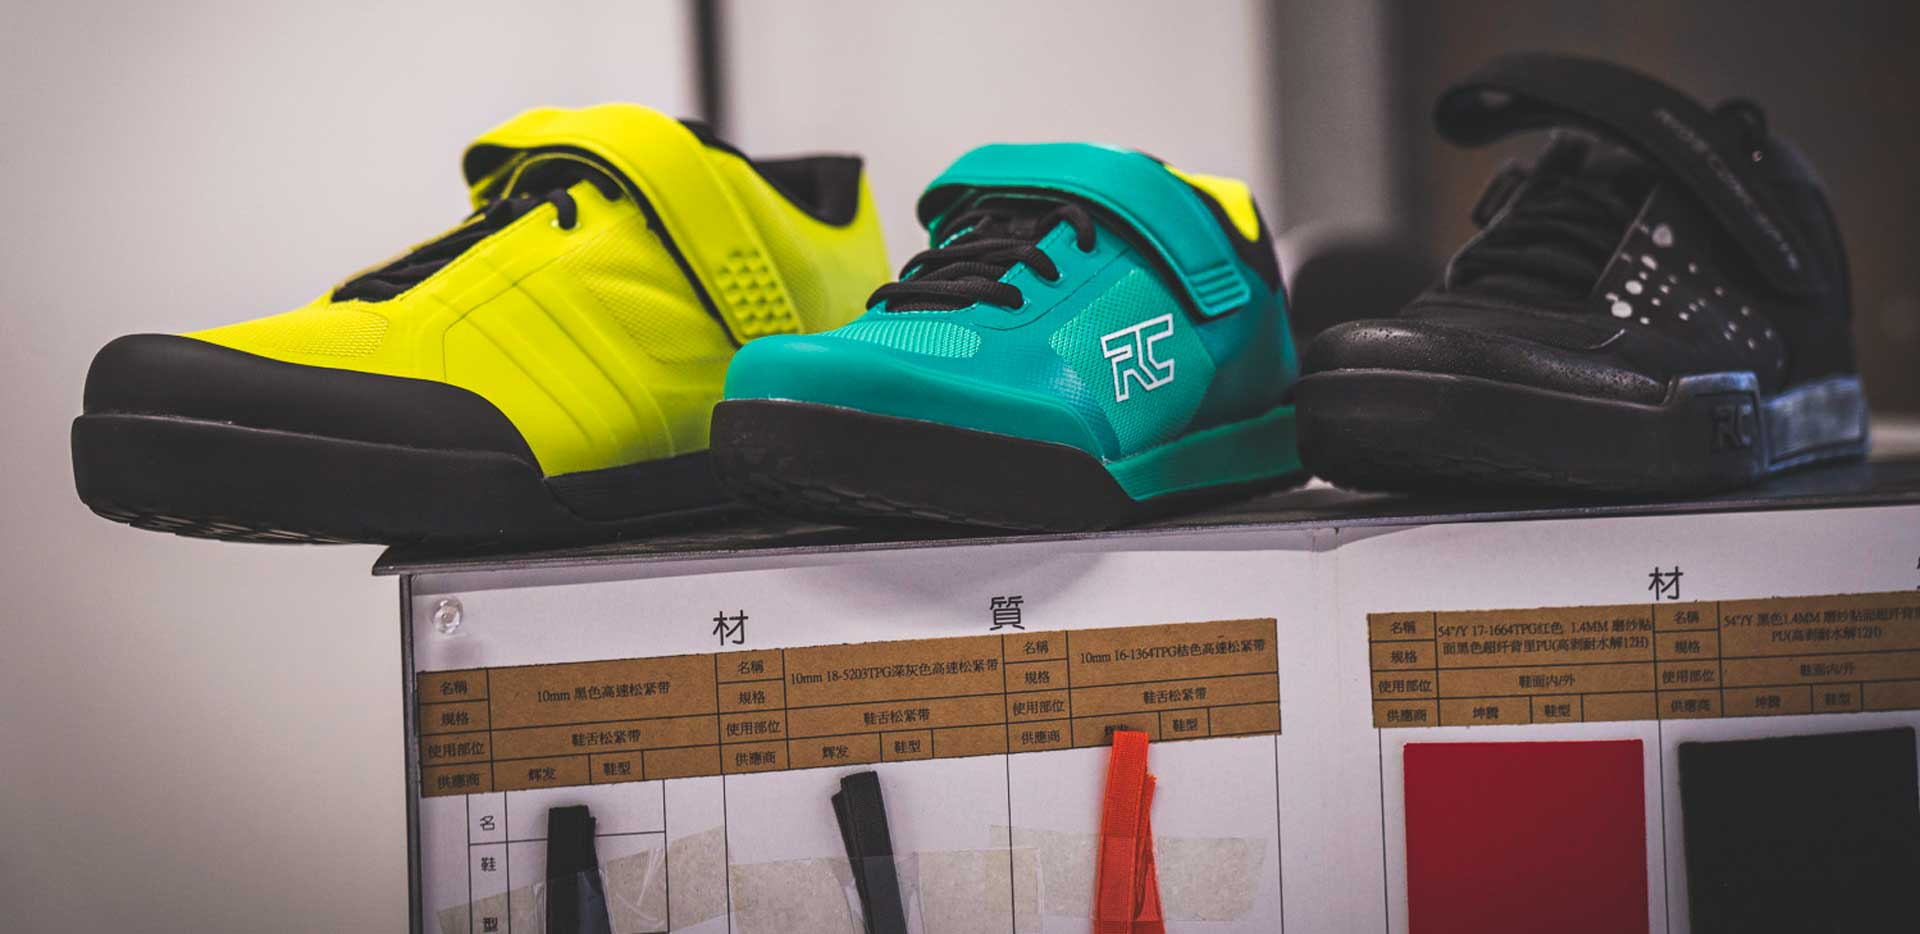 Ride Concepts Mountain Bike Shoes - An Inside Look